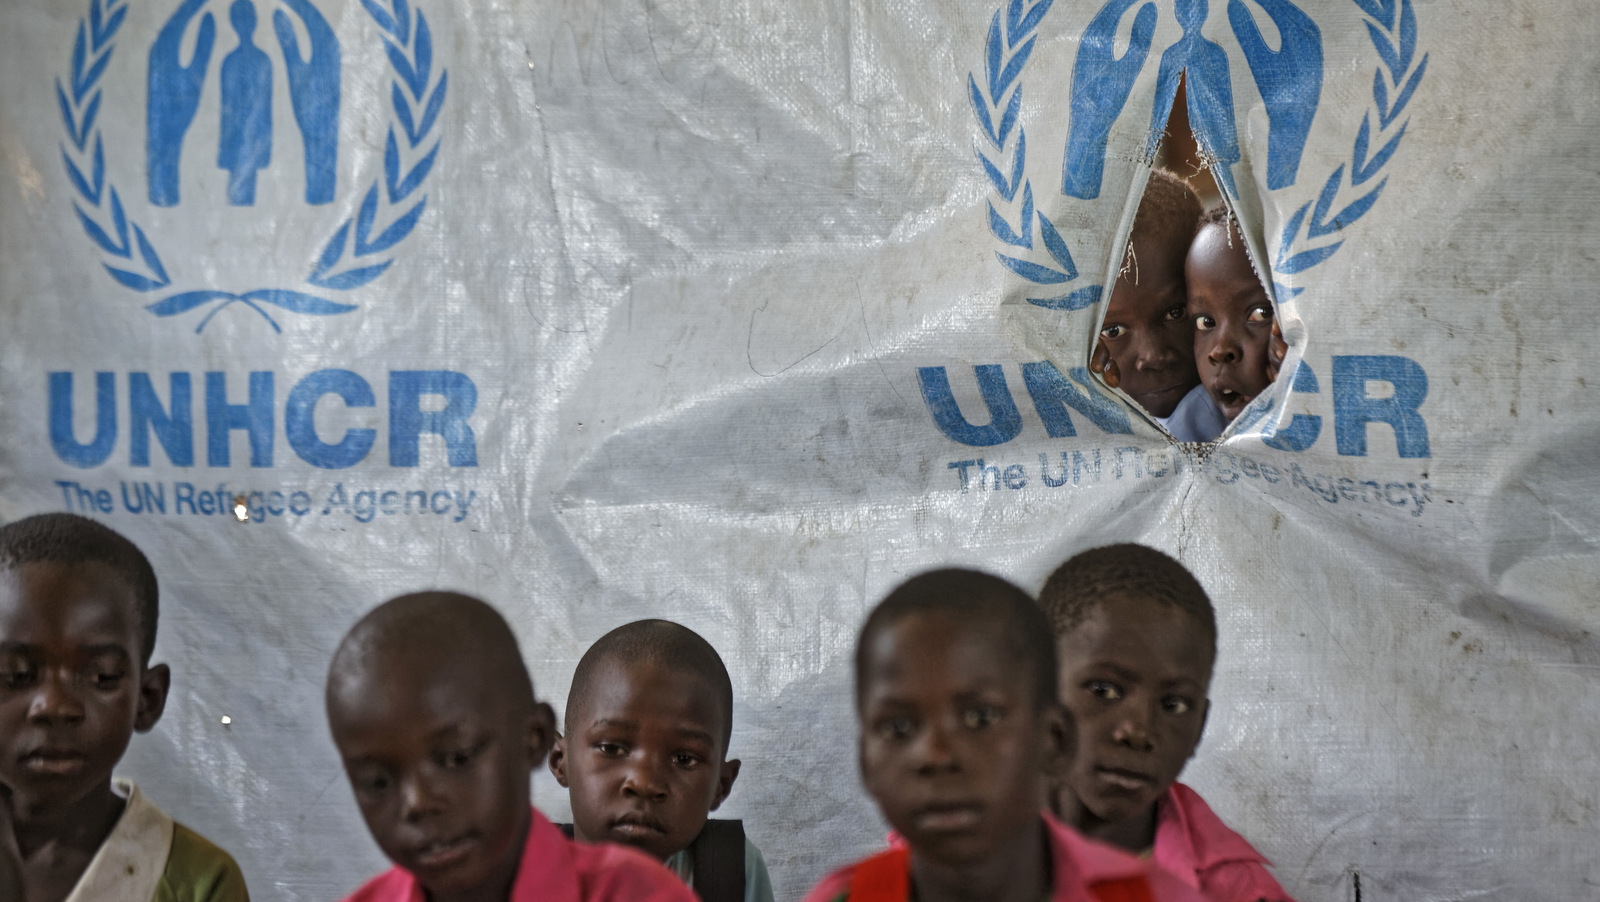 In this photo taken Wednesday, June 7, 2017, children look through a tear in the tarpaulin tents that serve as extra classrooms, for a mixed class of South Sudanese refugee children and Ugandan children, at the Ombechi Primary School in Bidi Bidi refugee settlement, northern Uganda. There is an urgent need to educate children in this overcrowded settlement that is home to over 270,000 refugees from South Sudan's civil war, despite them often having to walk long distances to the nearest school, funding shortages and a reduction in food rations for some refugees. (AP/Ben Curtis)